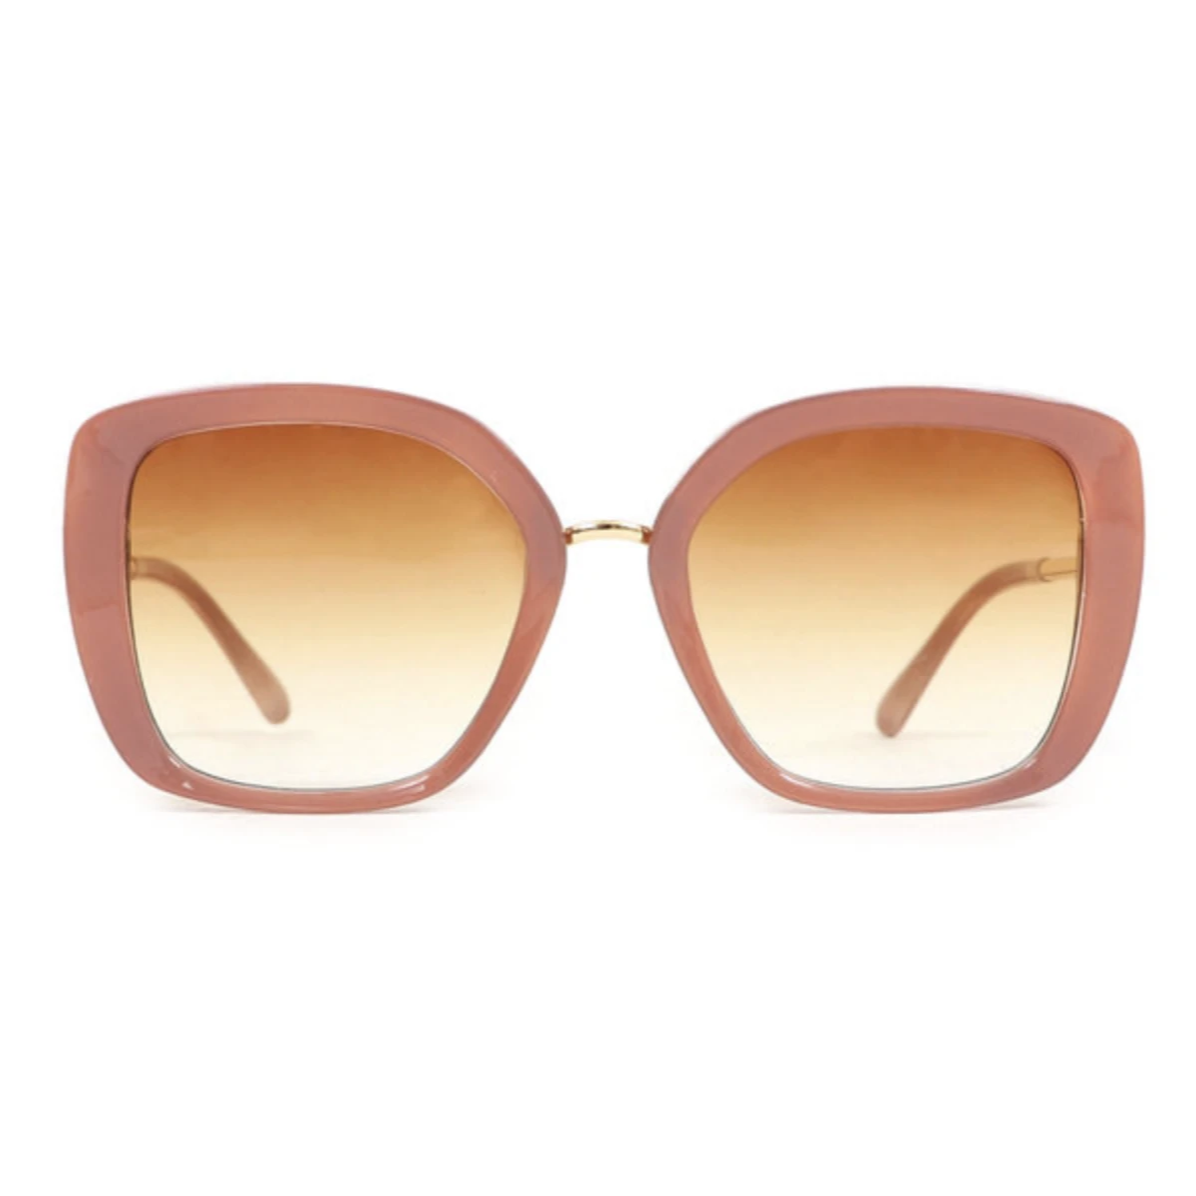 Powder Serenity Sunglasses in Nude